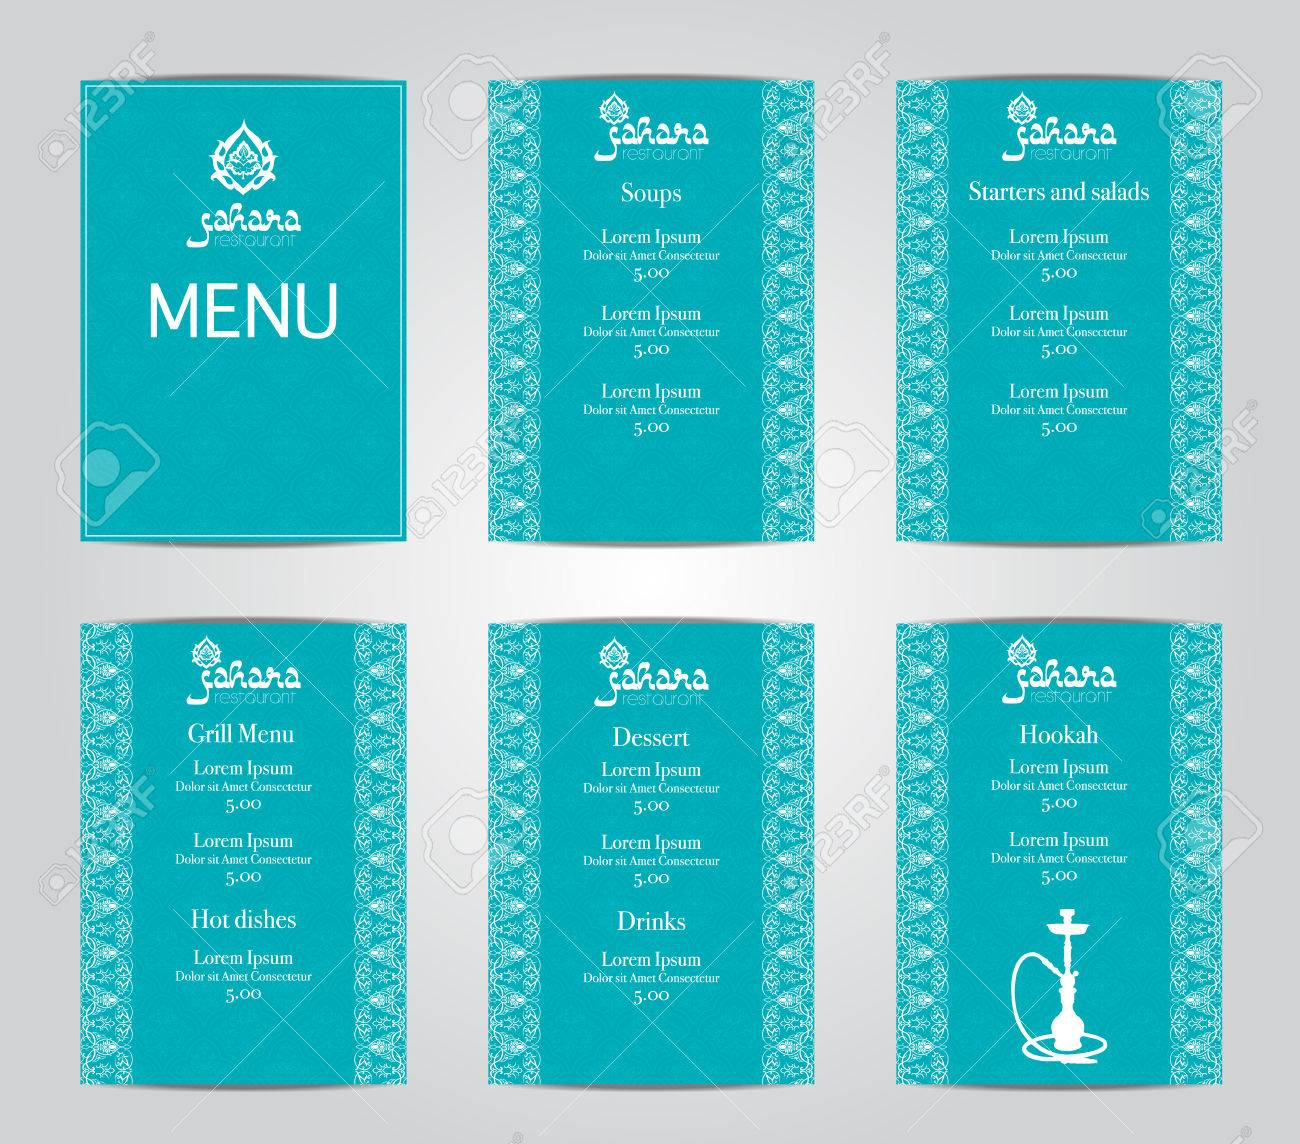 Vector Illustration Of A Menu Card Template Design For A Restaurant Royalty Free Cliparts Vectors And Stock Illustration Image 60242431